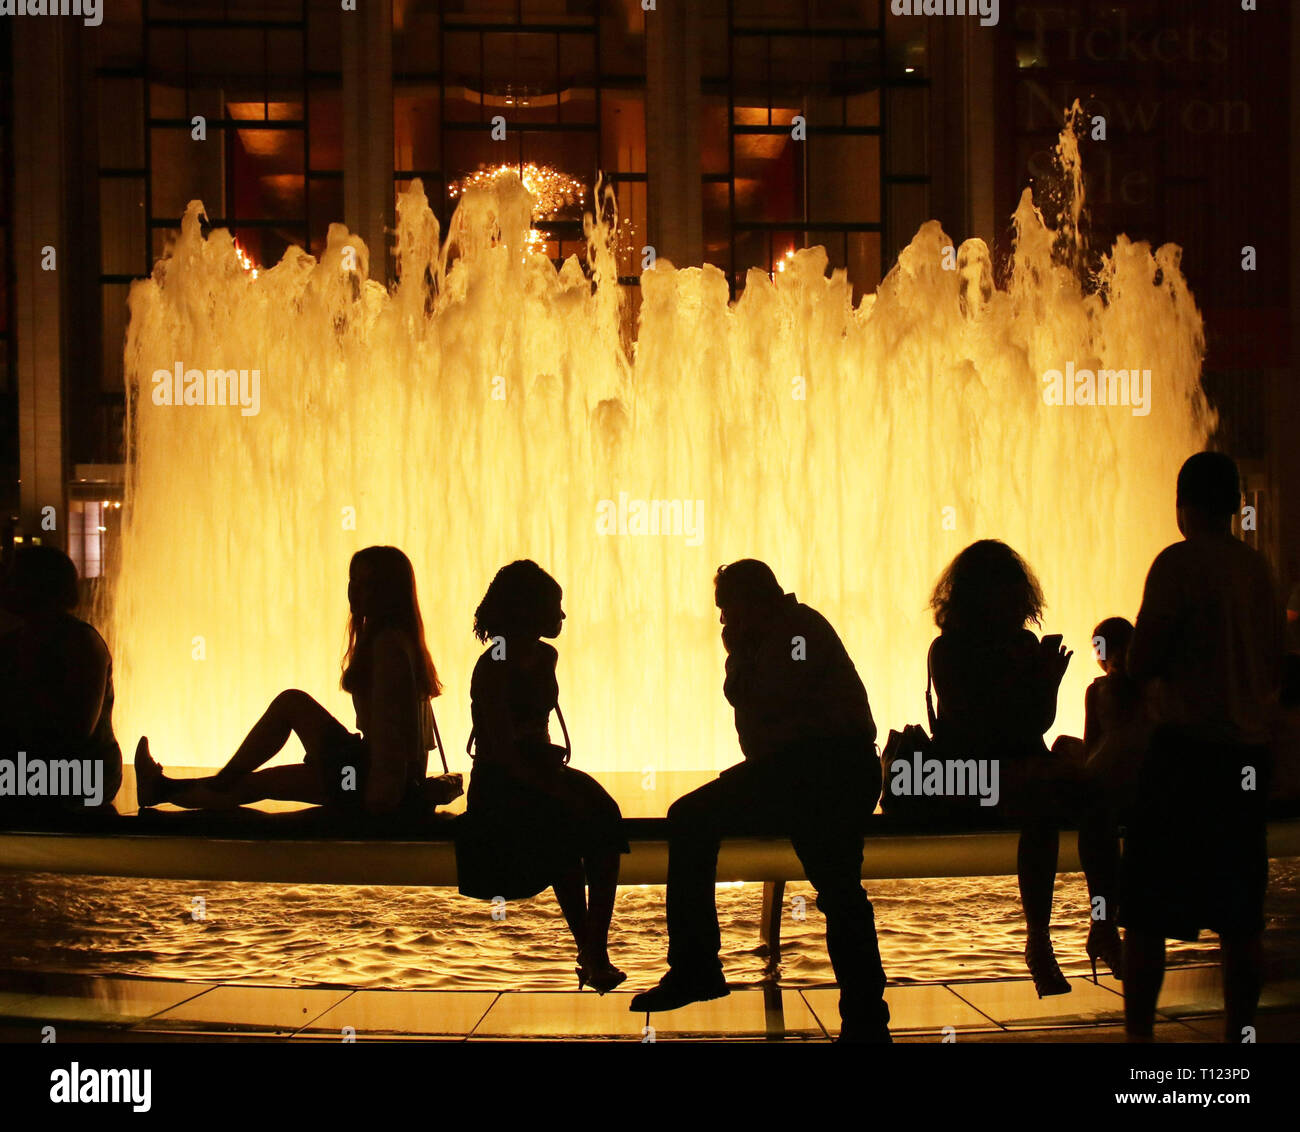 People sitting at the fountain at Lincoln Center, NYC, at night - Stock Image